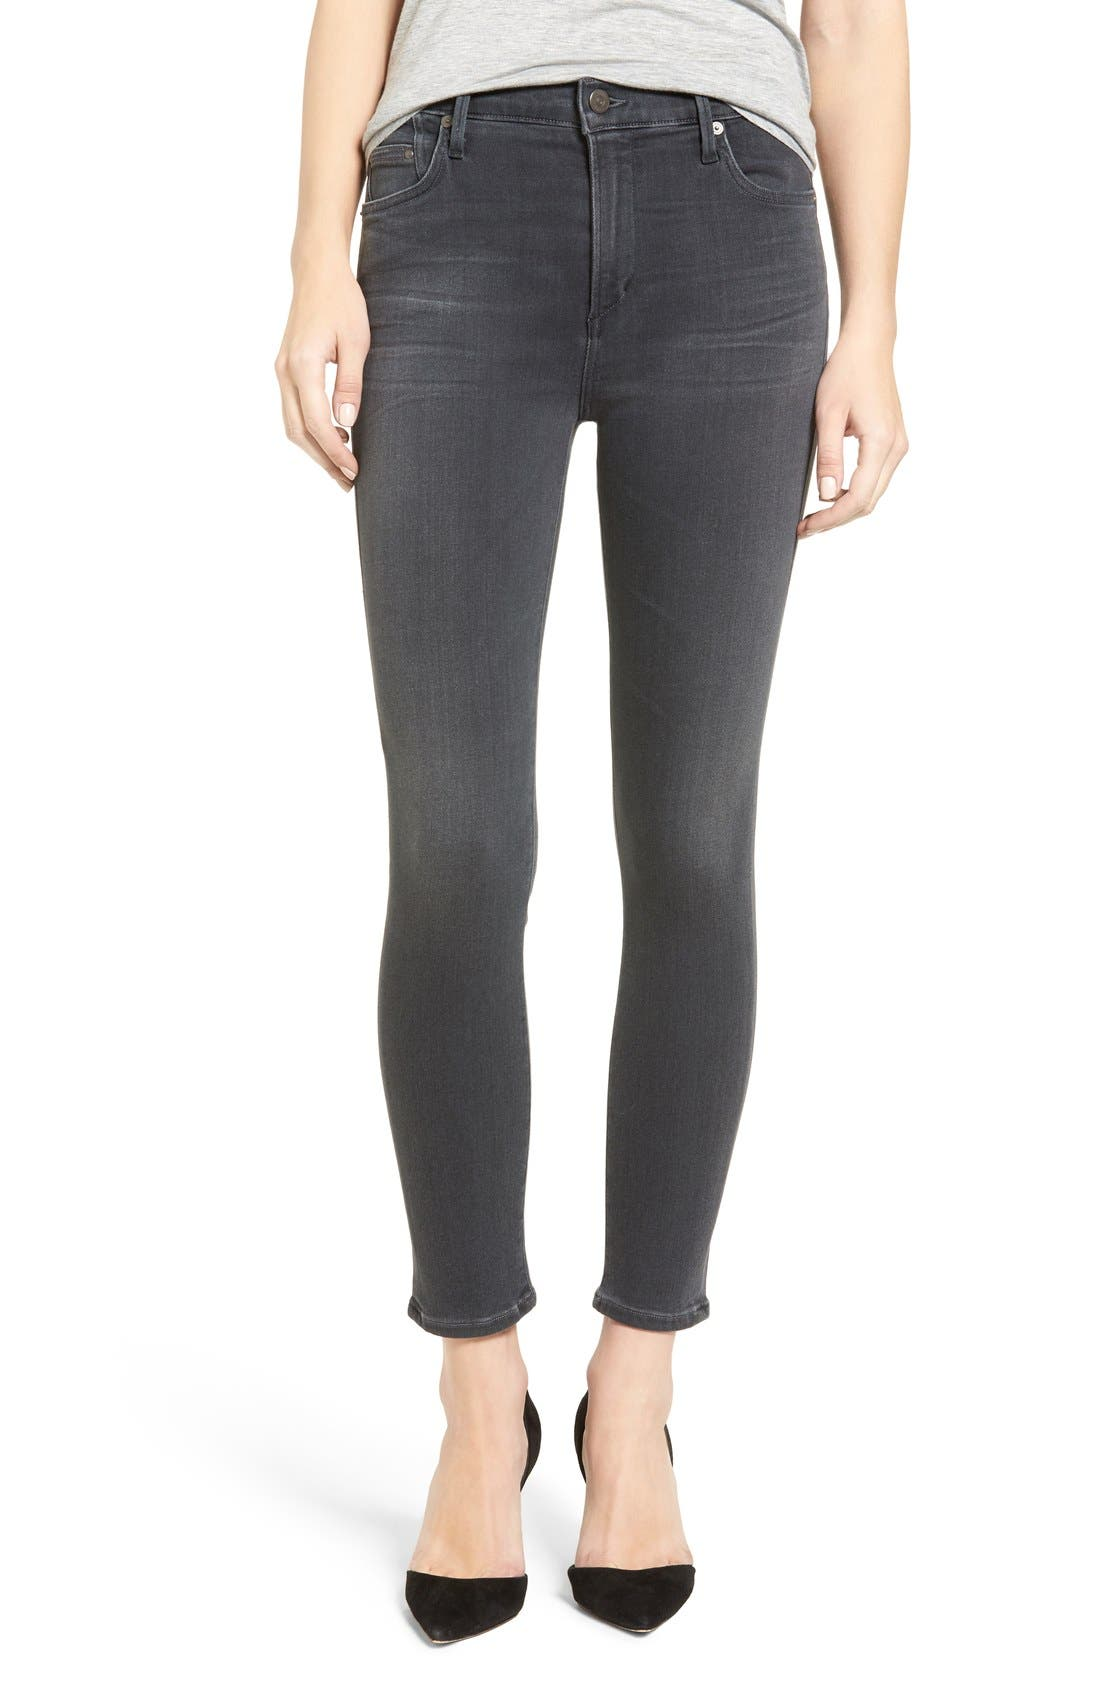 Main Image - Citizens of Humanity Rocket High Waist Crop Skinny Jeans (Chateau)